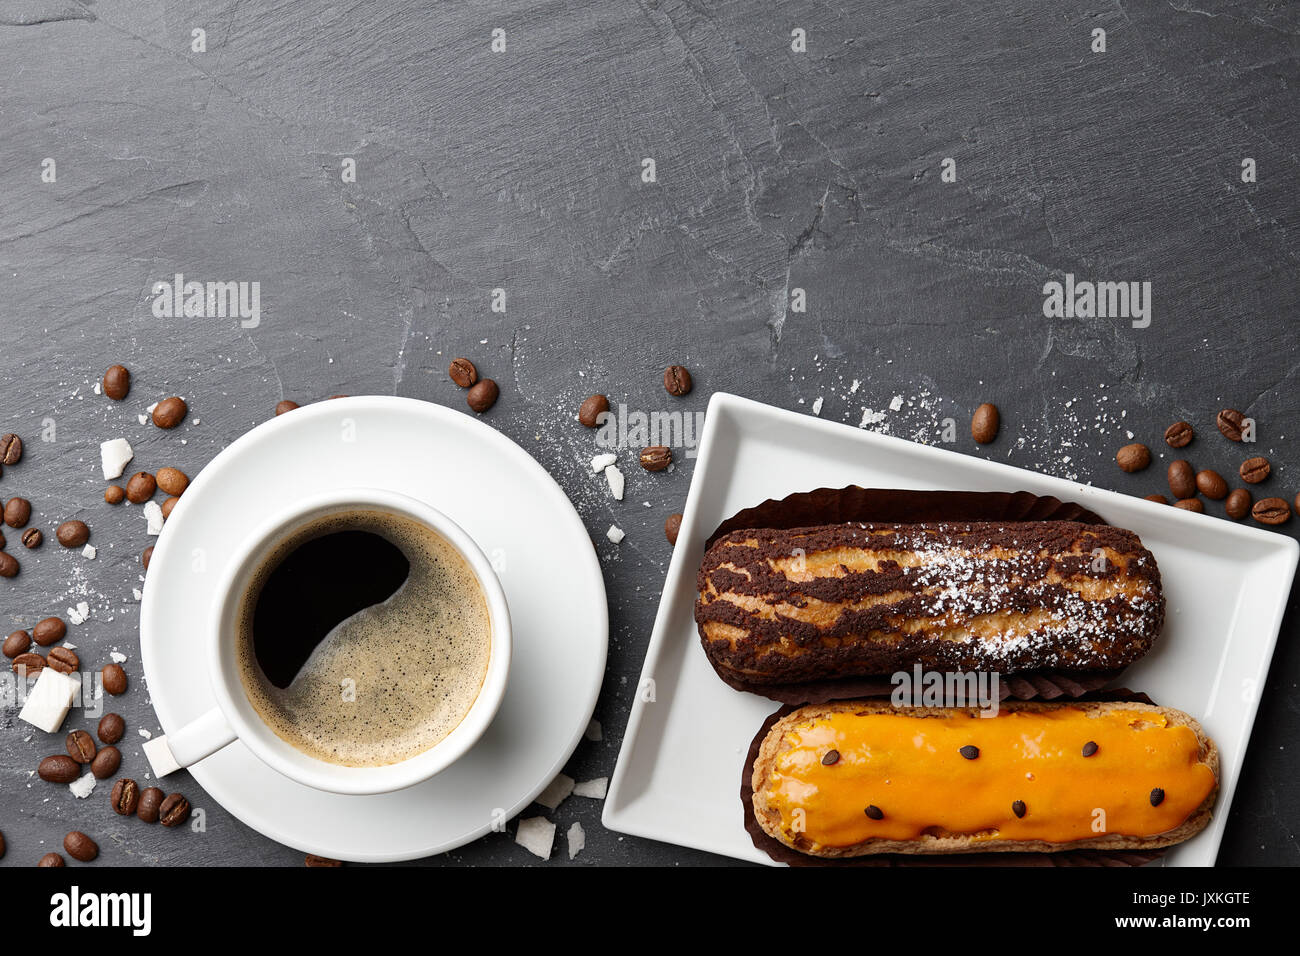 Cup of coffee with french eclairs on dark stone background - Stock Image